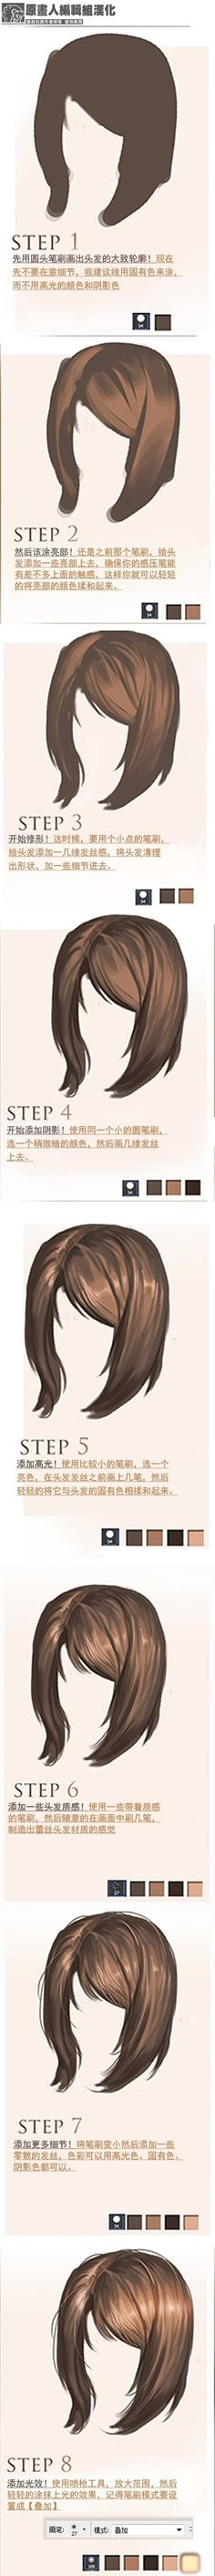 Simple Hair shading done effectively                                                                                                                                                                                 More